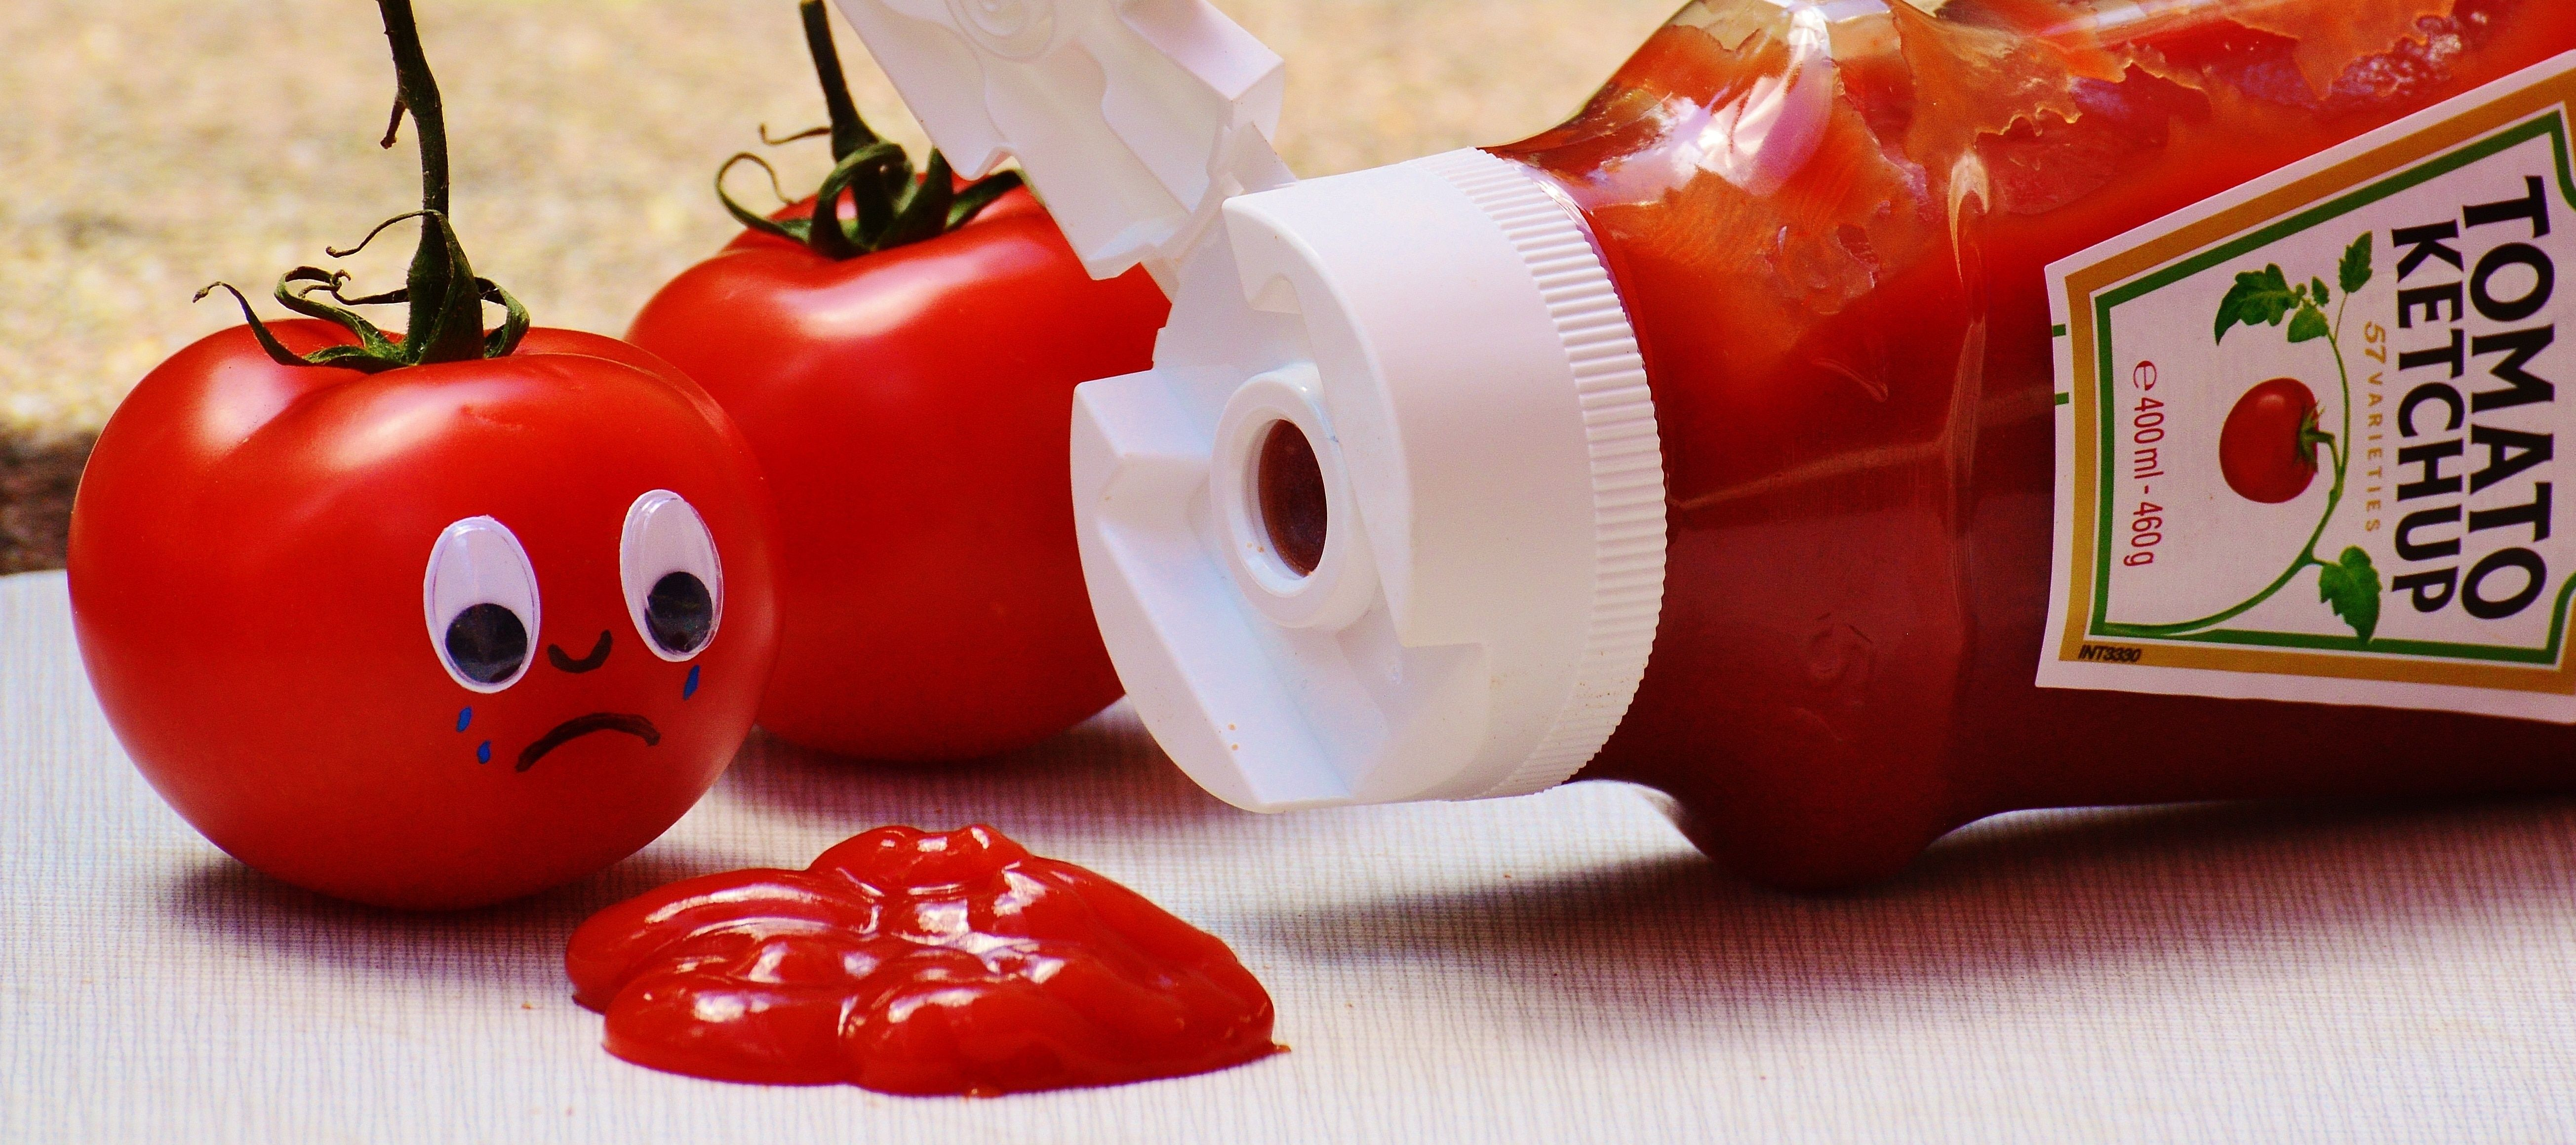 a picture of white and red tomato ketchup bottle and two tomatoes ...